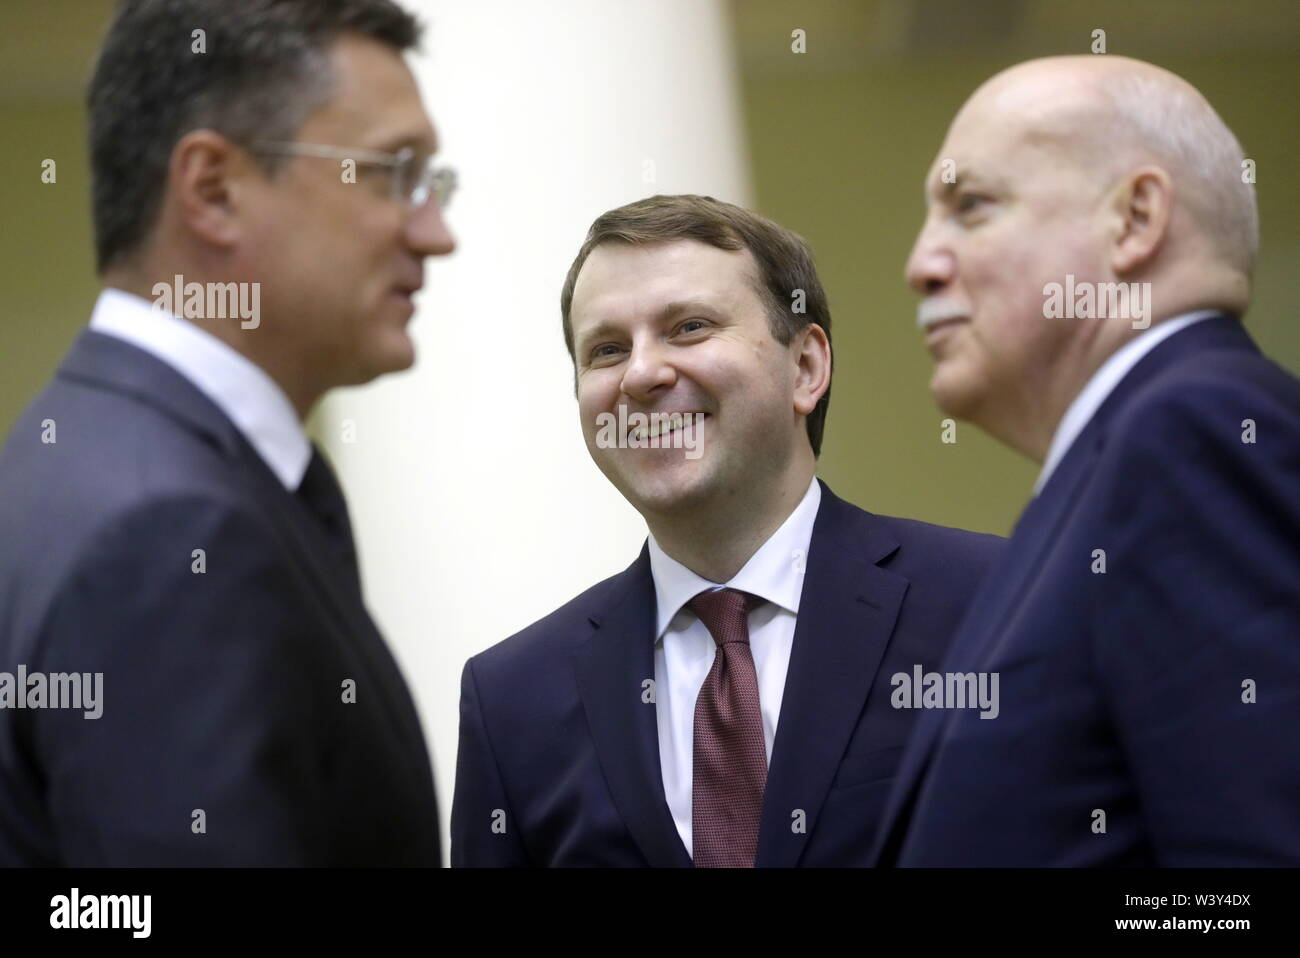 St Petersburg, Russia. 18th July, 2019. ST PETERSBURG, RUSSIA - JULY 18, 2019: Russia's Energy Minister Alexander Novak, Russia's Economic Development Minister Maxim Oreshkin and Russian Ambassador to Belarus Dmitry Mezentsev (L-R) during a meeting with Russian President Vladimir Putin at Tauride Palace. Mikhail Metzel/TASS Credit: ITAR-TASS News Agency/Alamy Live News - Stock Image